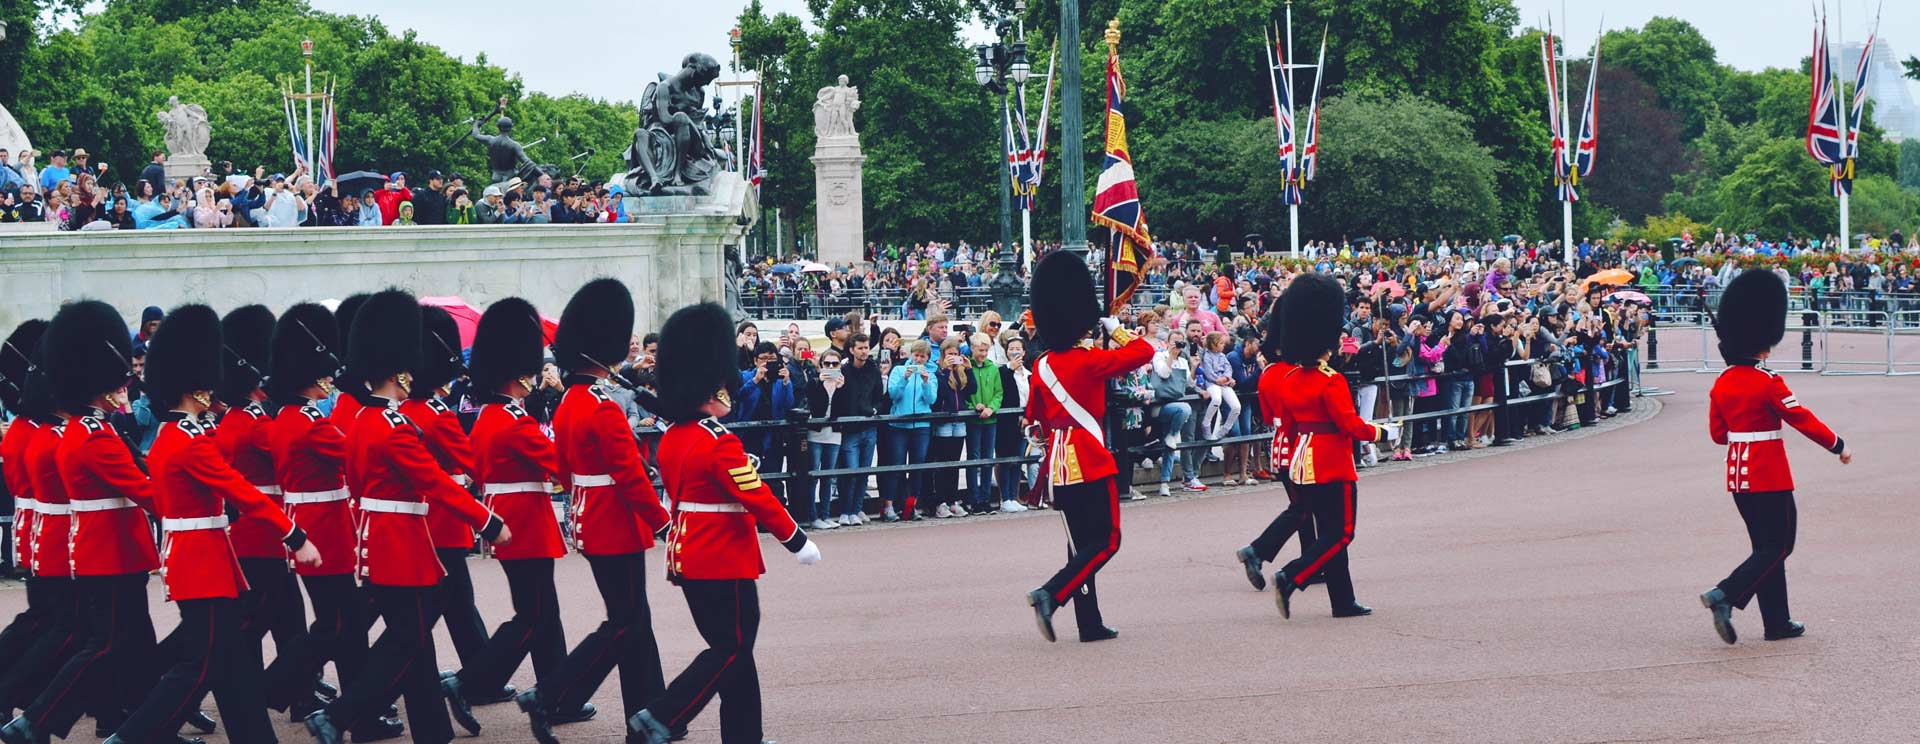 Guards marching in Buckingham Palace in London